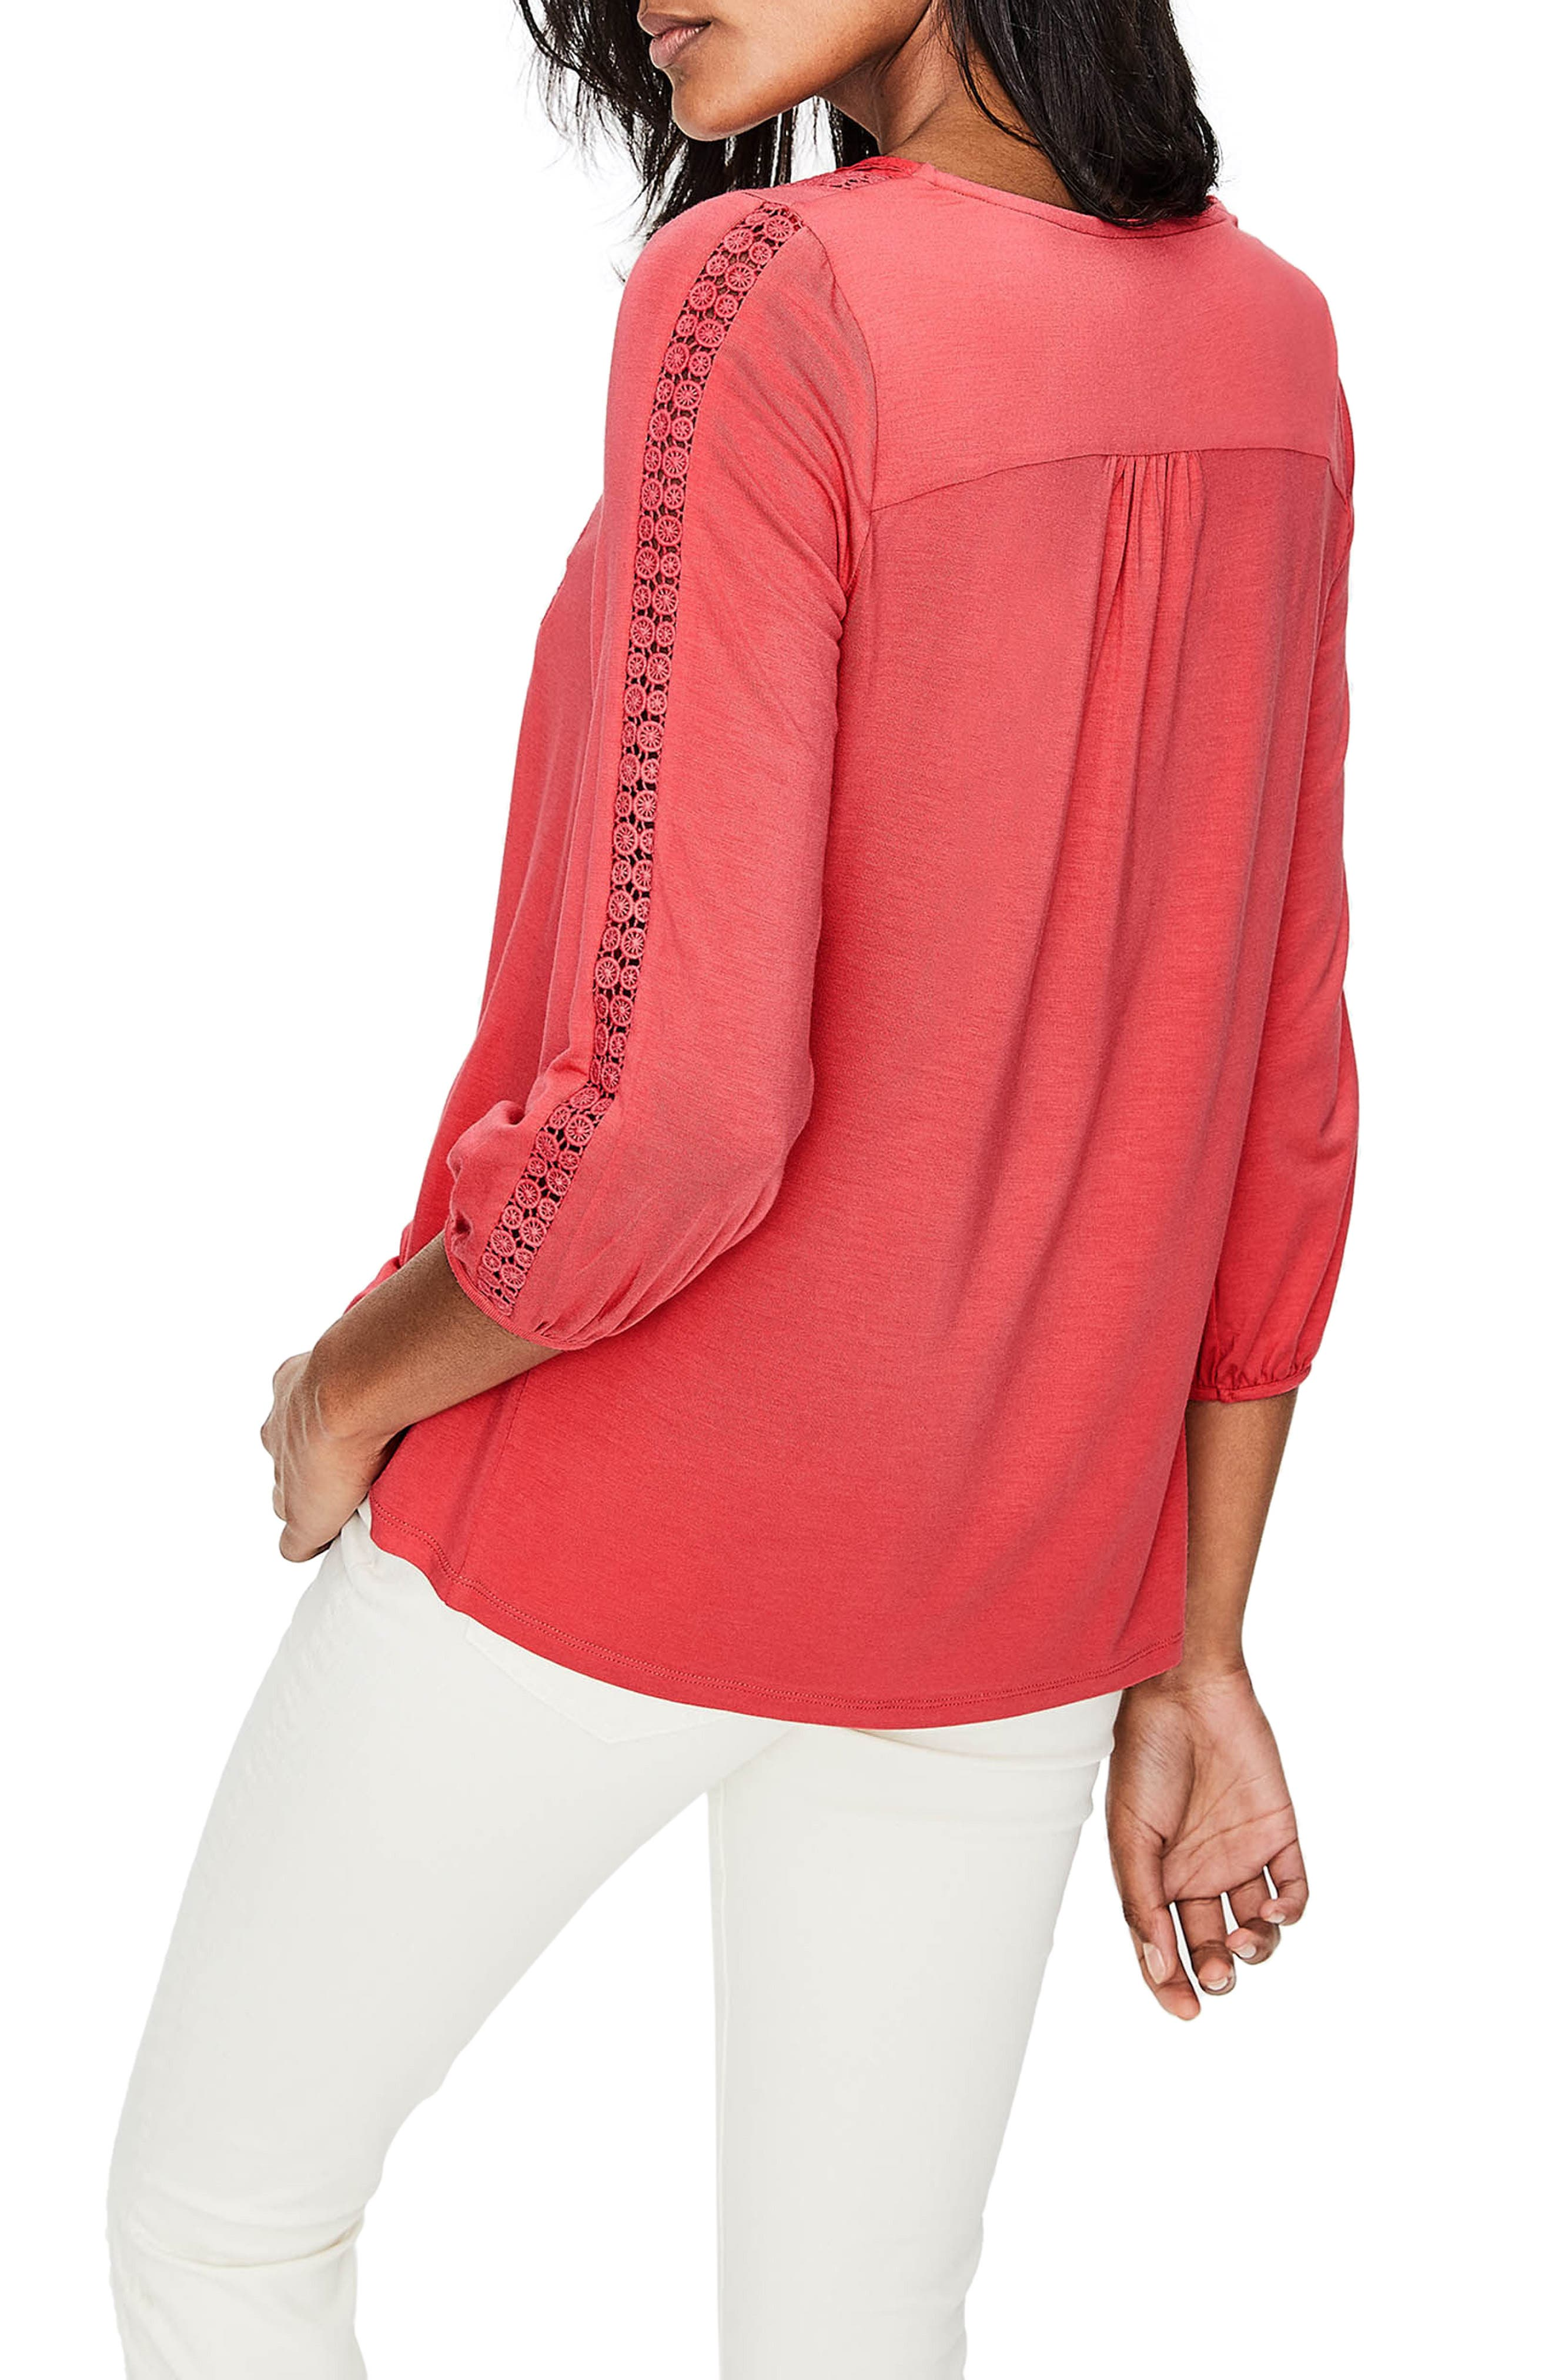 Mixed Textures Peasant Top,                             Alternate thumbnail 2, color,                             Coral Sunset